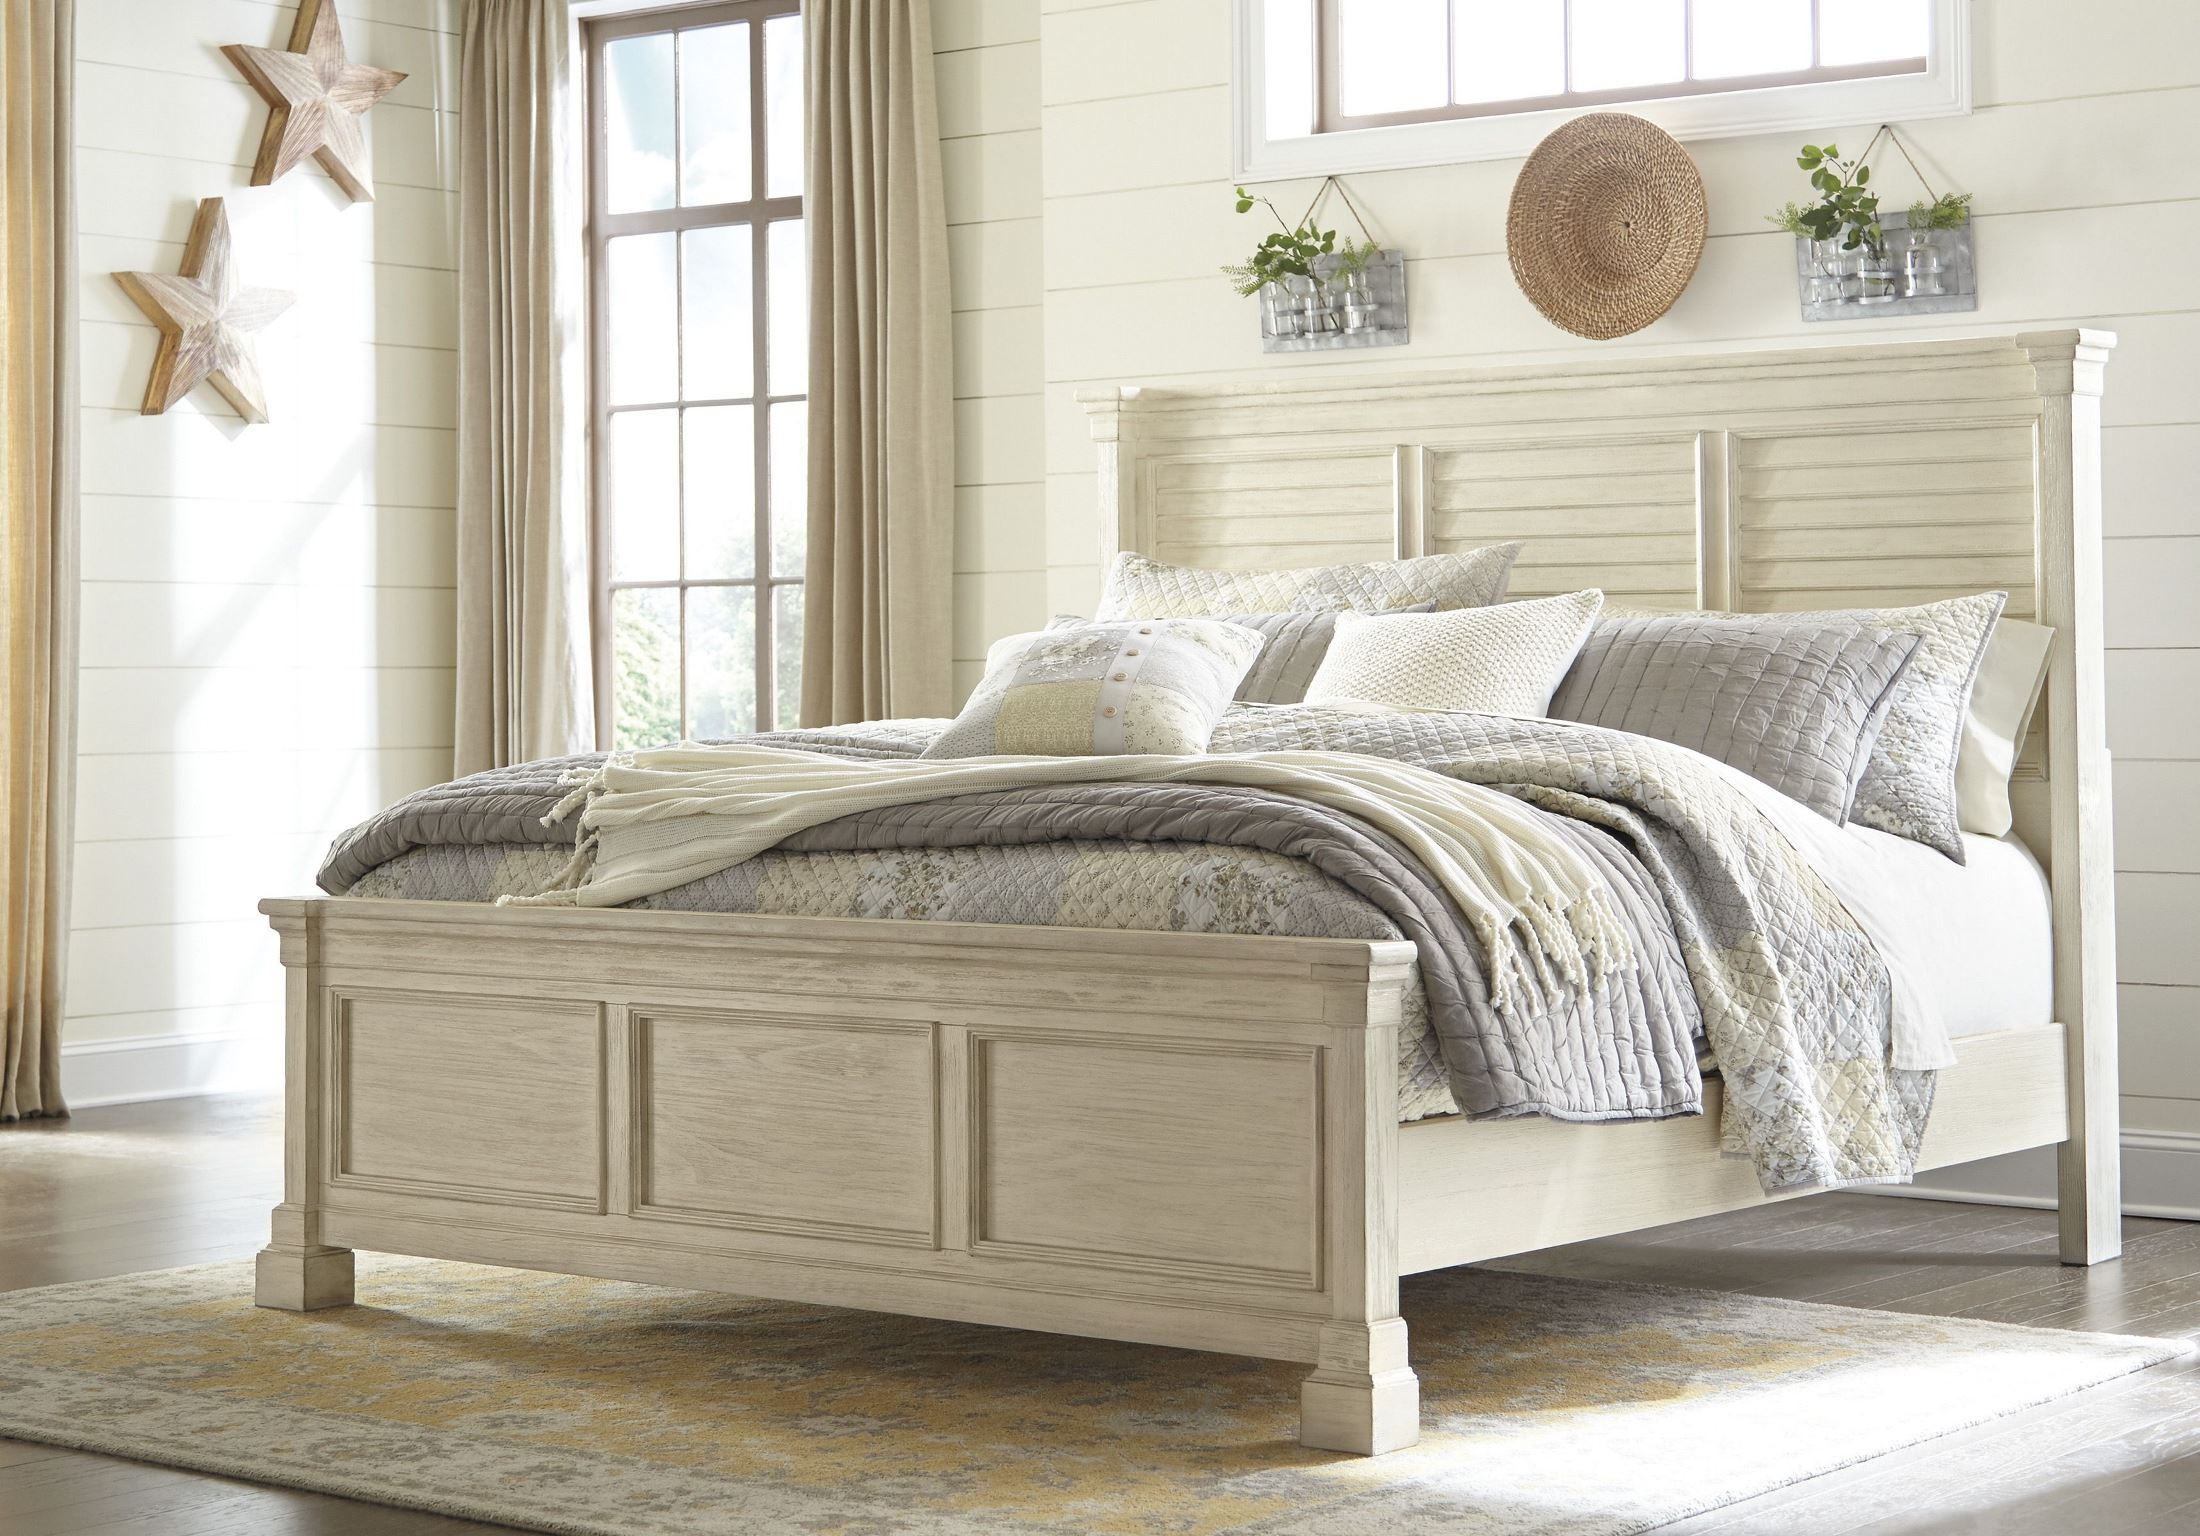 Bolanburg White Panel Bedroom Set B647 54 57 96 Ashley